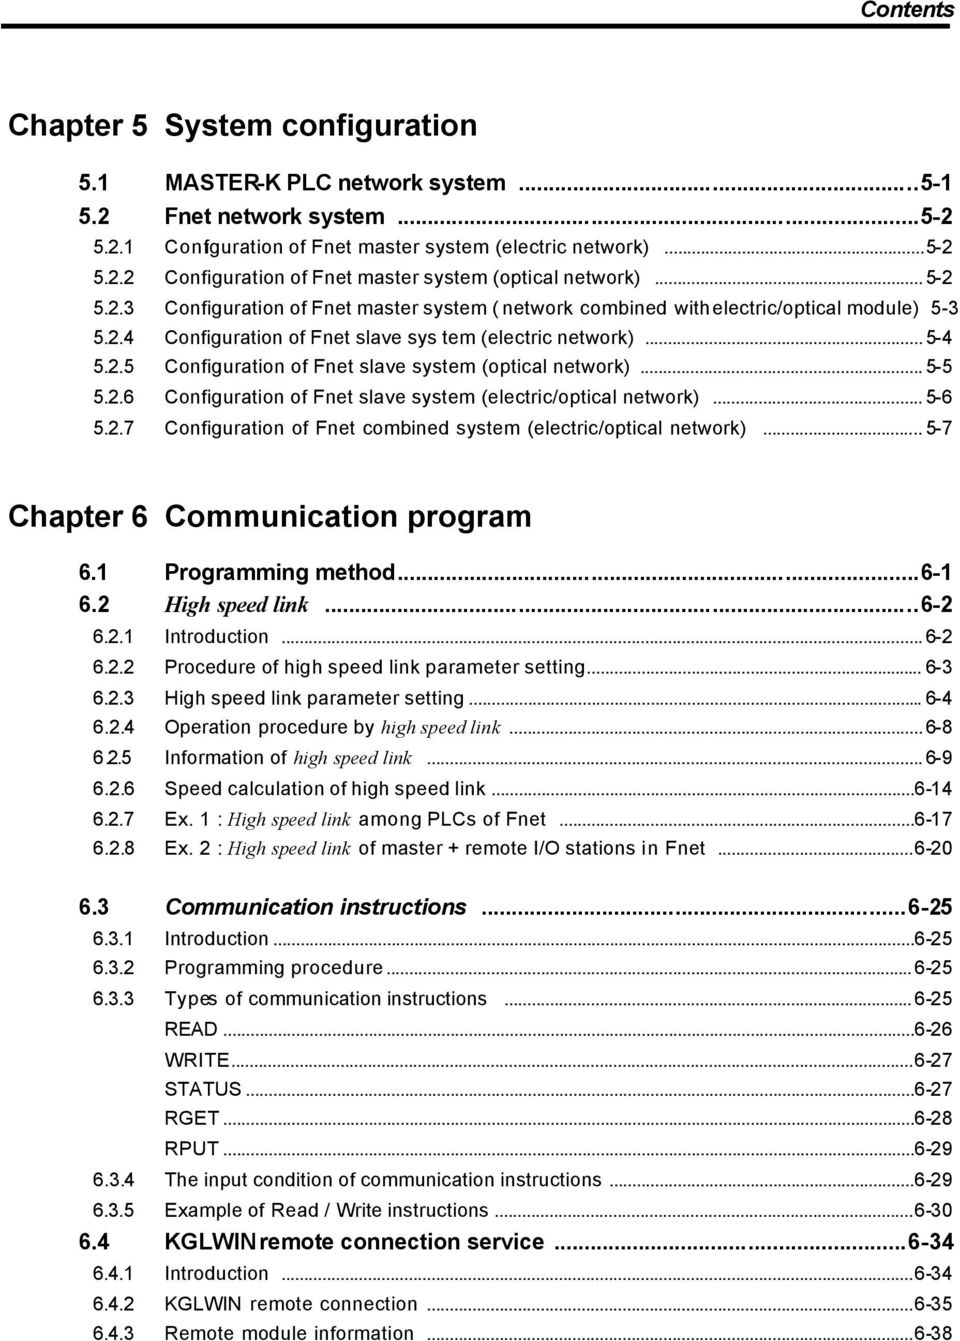 .. 5-5 5.2.6 Configuration of Fnet slave system (electric/optical network)... 5-6 5.2.7 Configuration of Fnet combined system (electric/optical network)... 5-7 Chapter 6 Communication program 6.